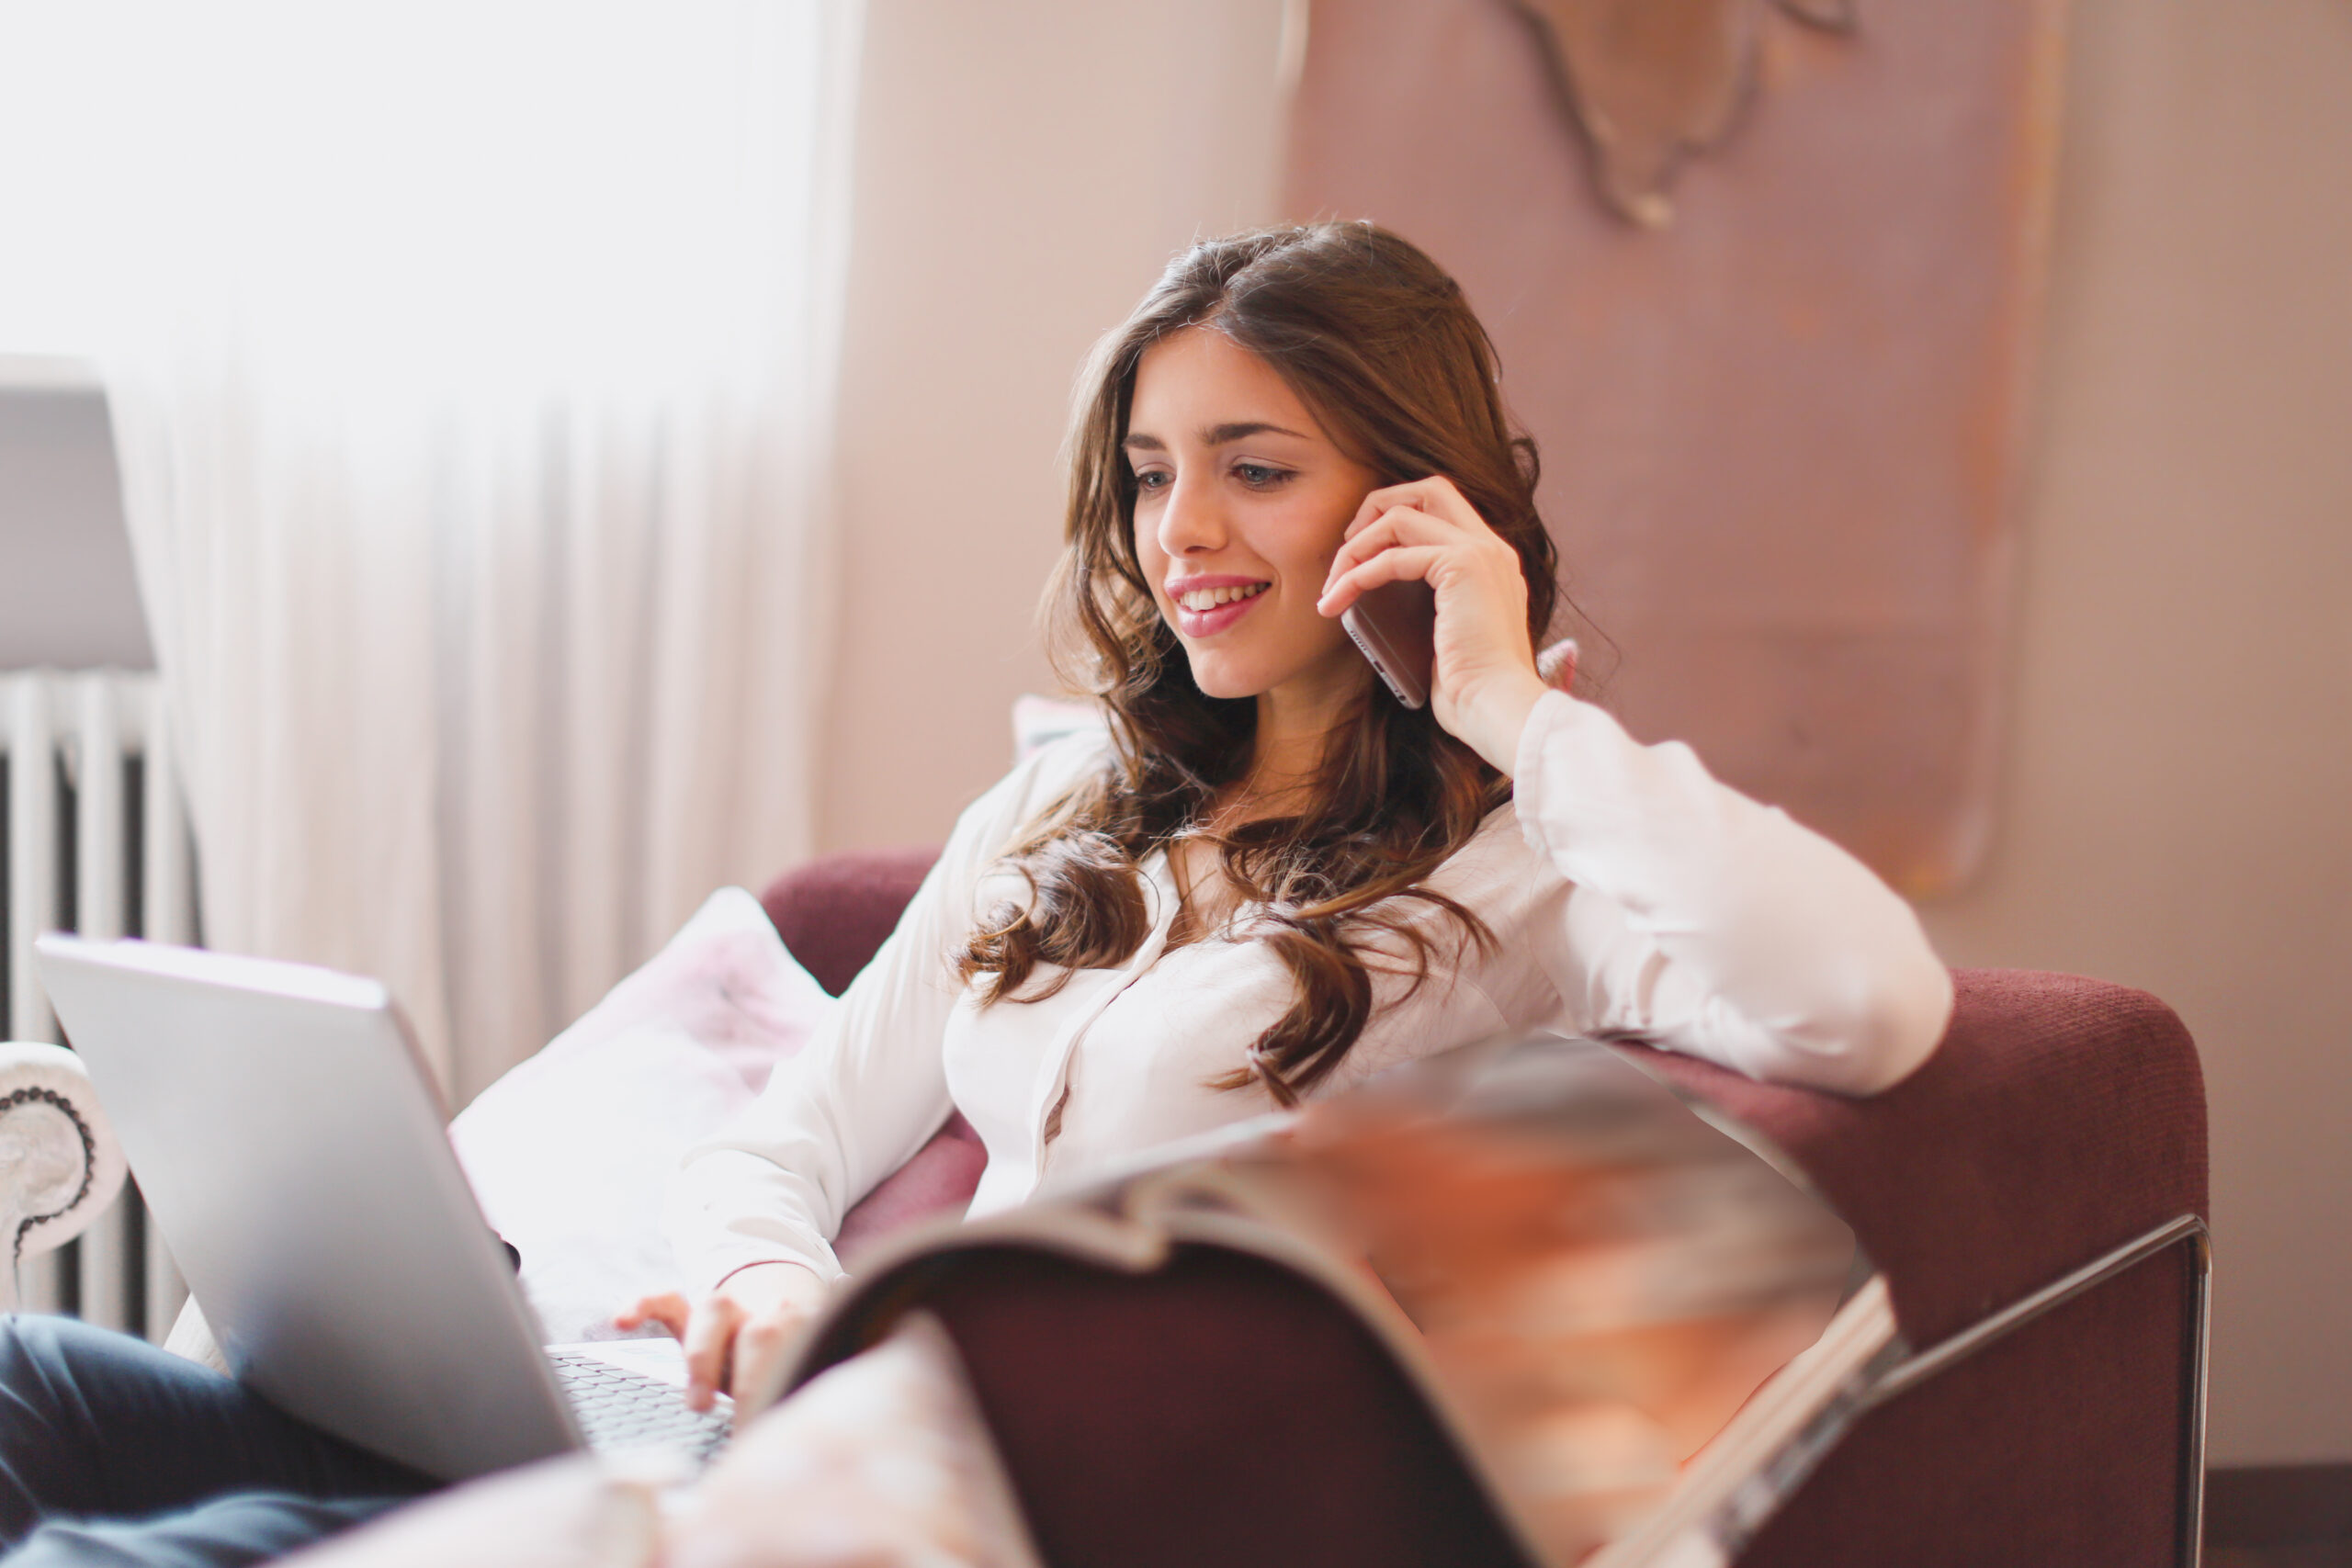 Ilana Integrative Health woman-in-white-long-sleeve-shirt-sitting-on-brown-chair-3768590-1-scaled Services